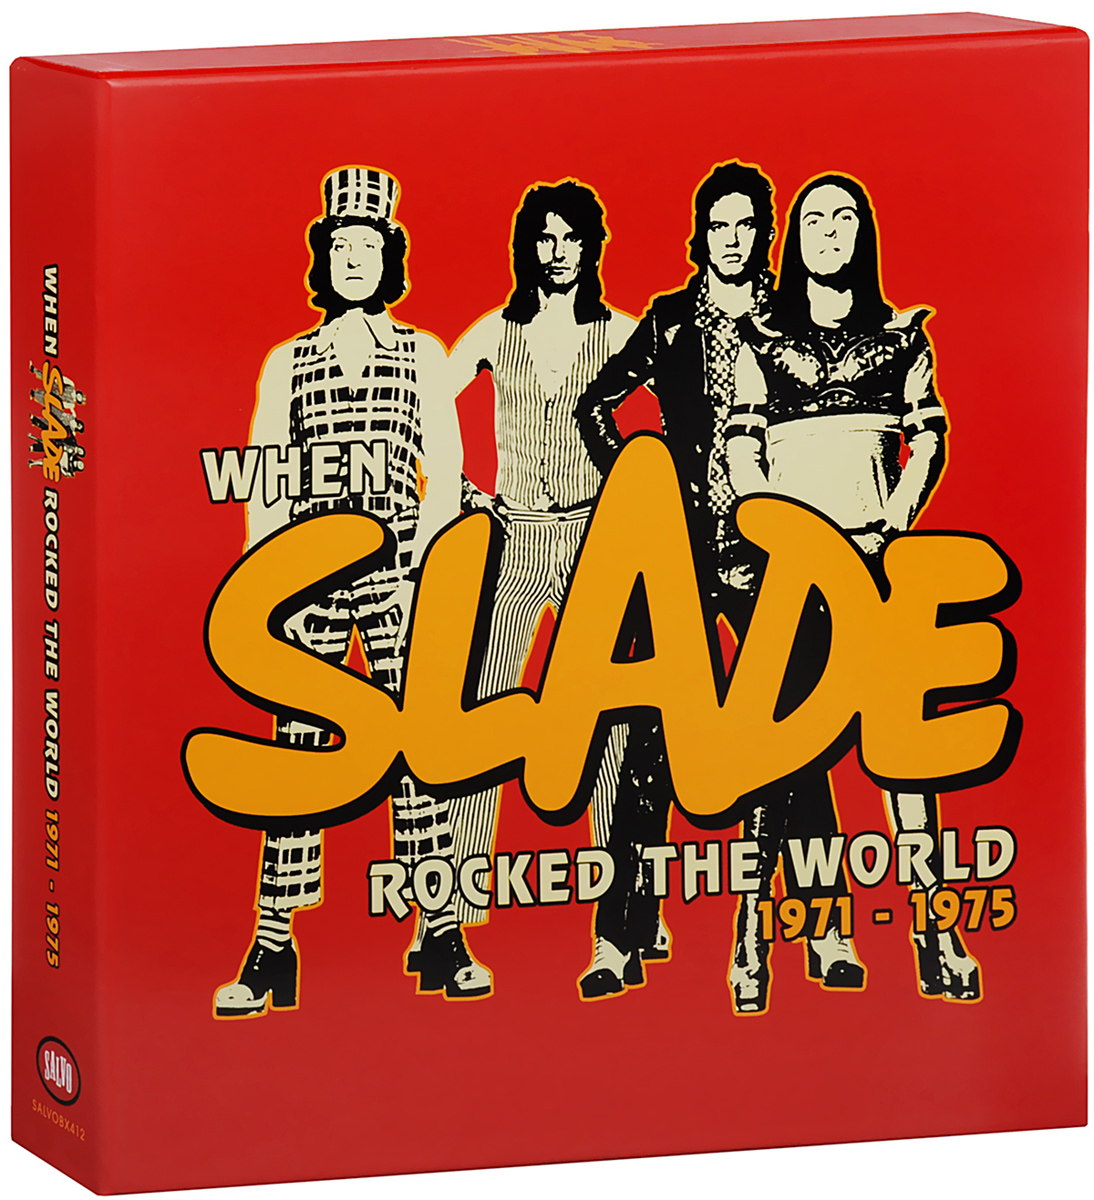 Slade Slade. When Slade Rocked The World 1971-1975 (8 LP + 2 CD) nightwish nightwish over the hills and far away special celebration edition 2 lp